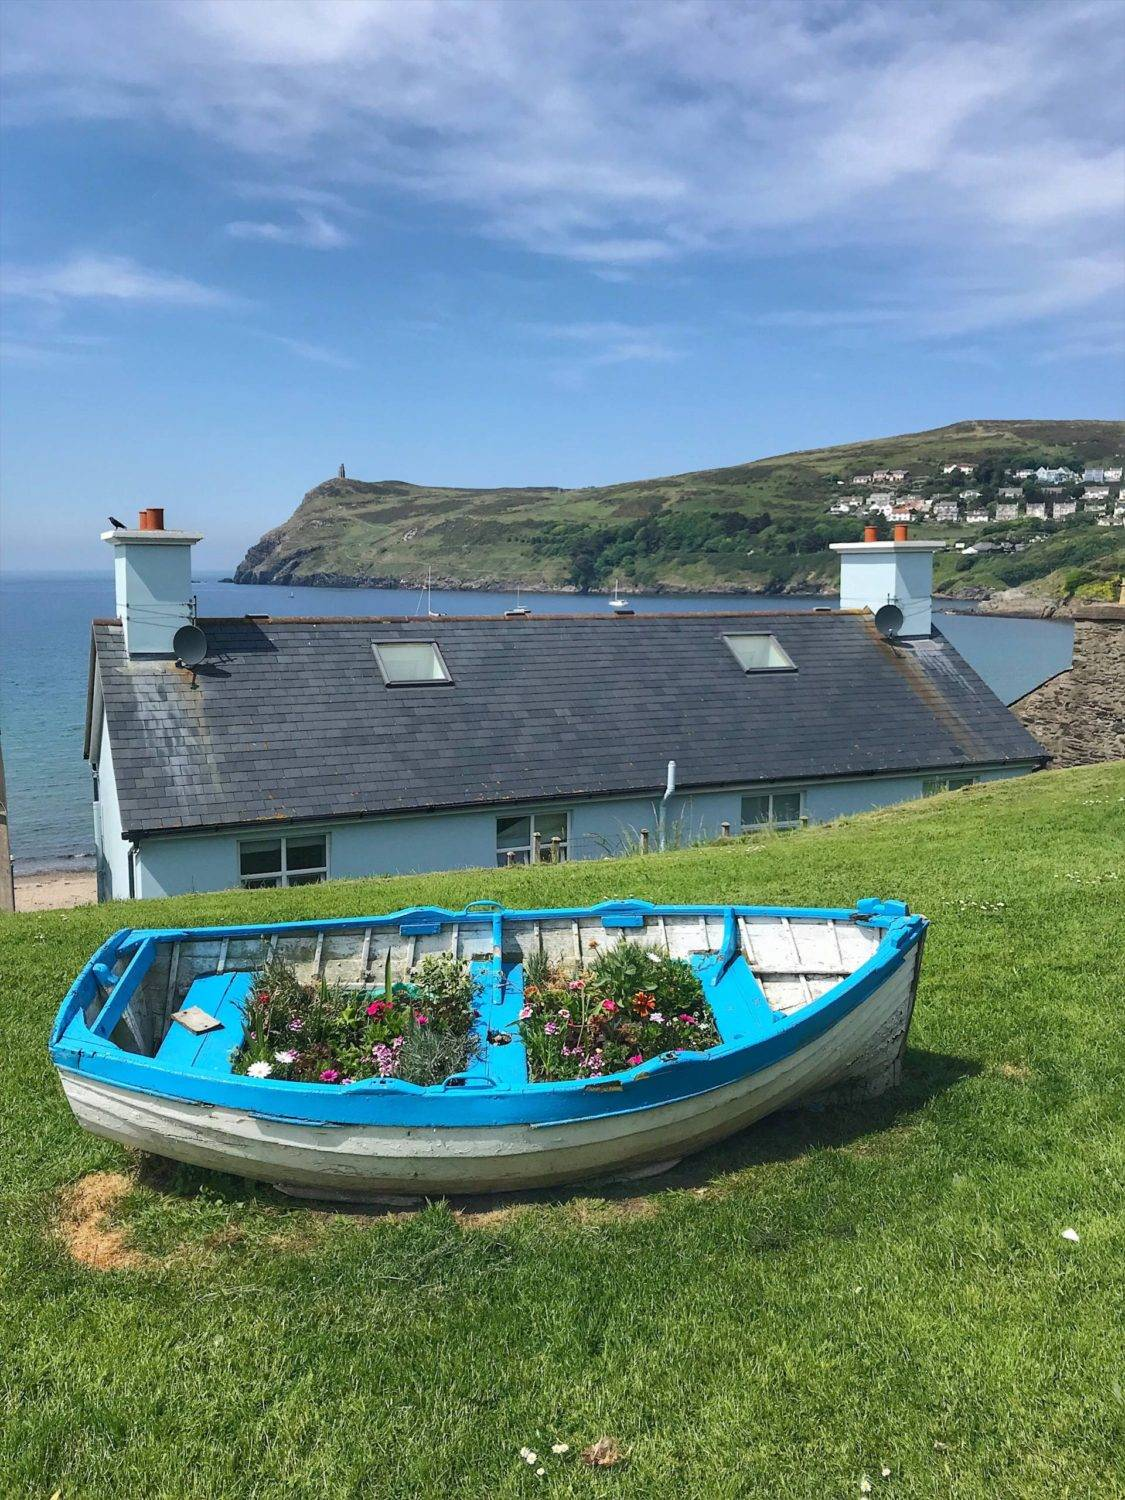 42 Cheap & Unique Things To Do In Isle of Man - While I'm Young